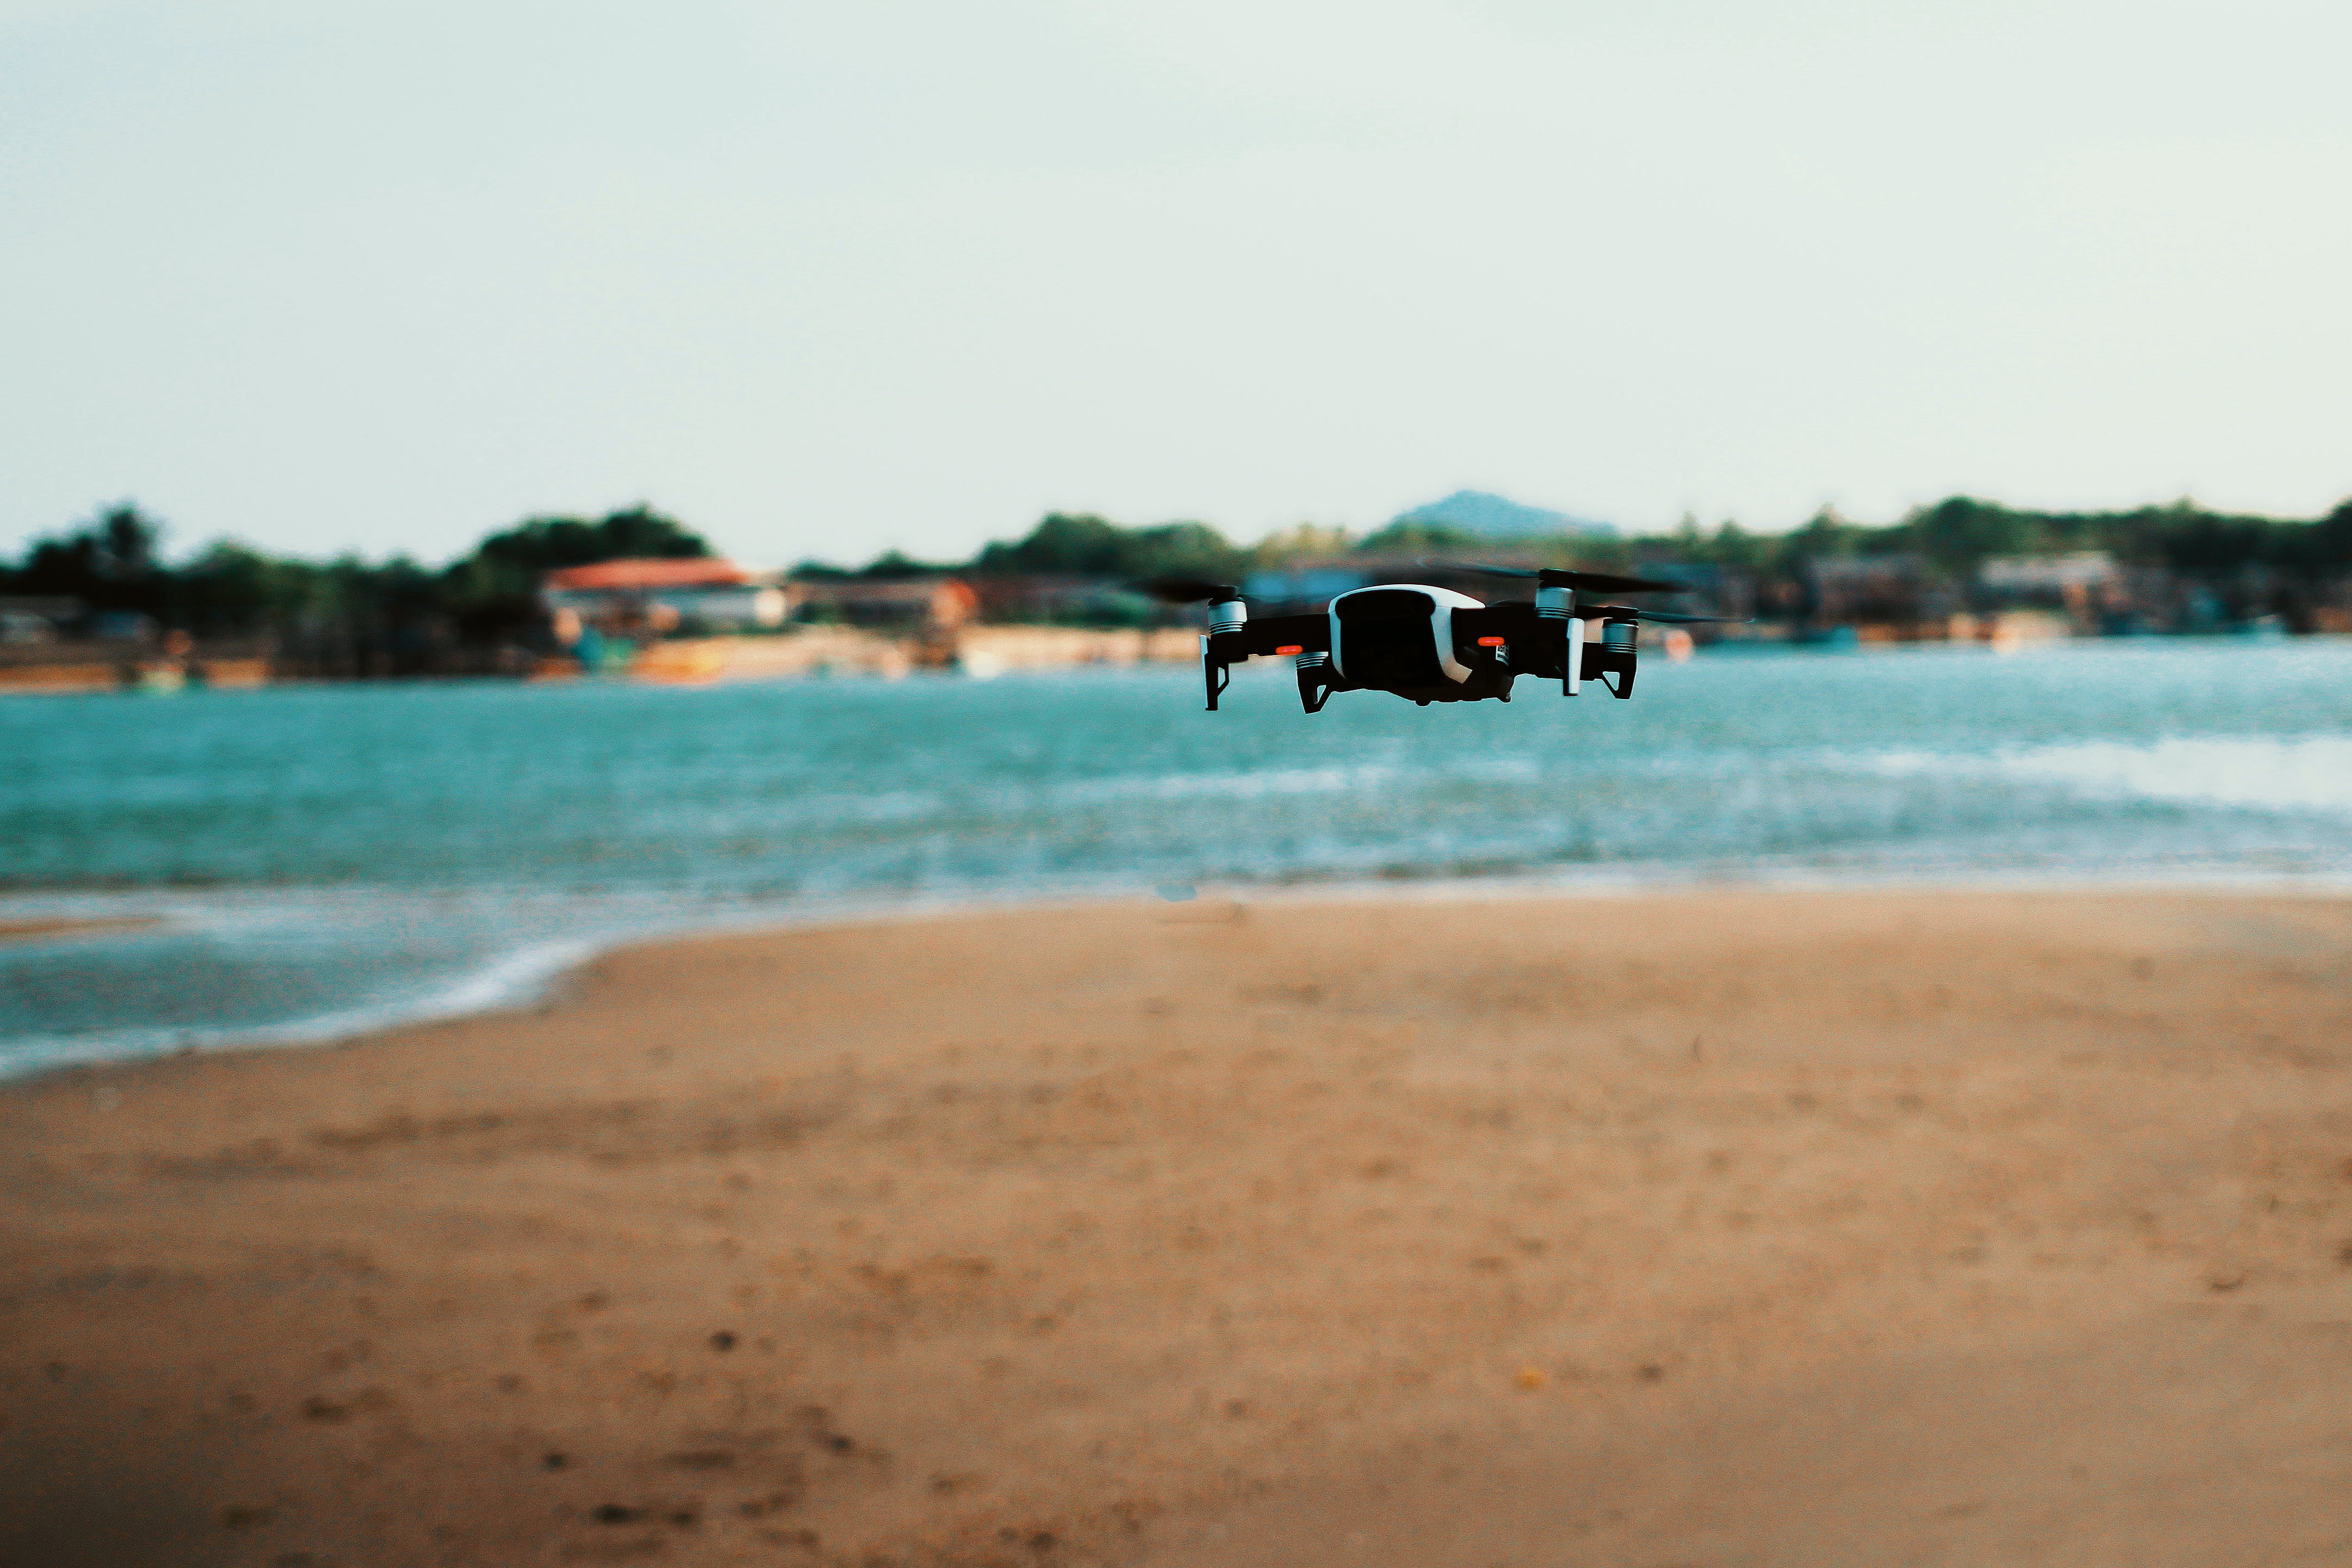 Black Quadcopter Drone On Flight